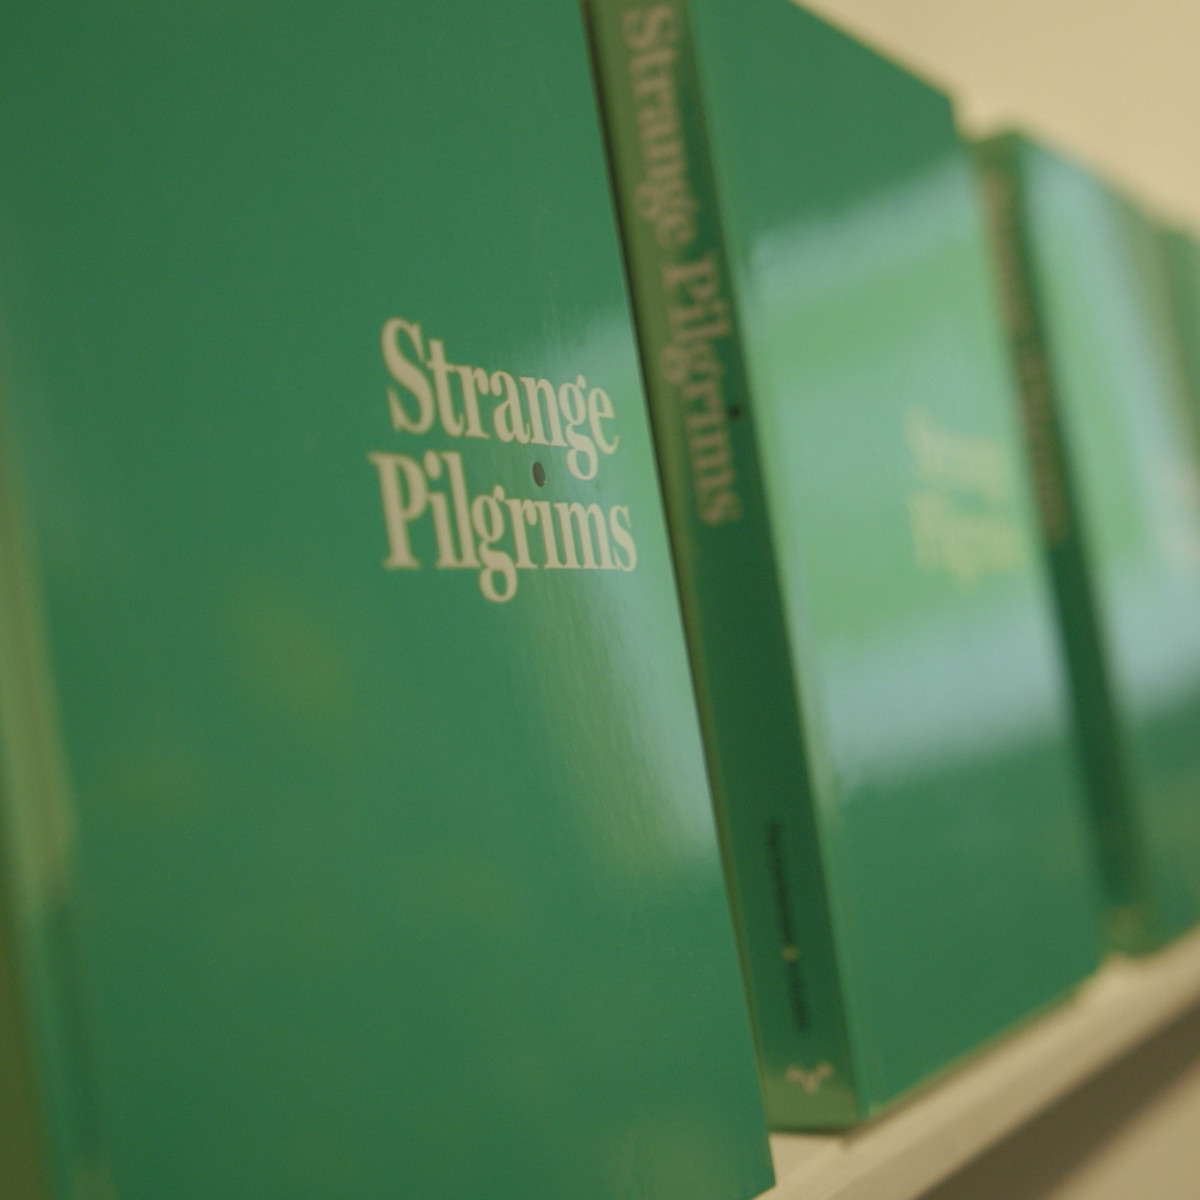 KLRU PBS Arts in Context Strange Pilgrims Contemporary Austin Gabriel Garcia Marquez book catalogue